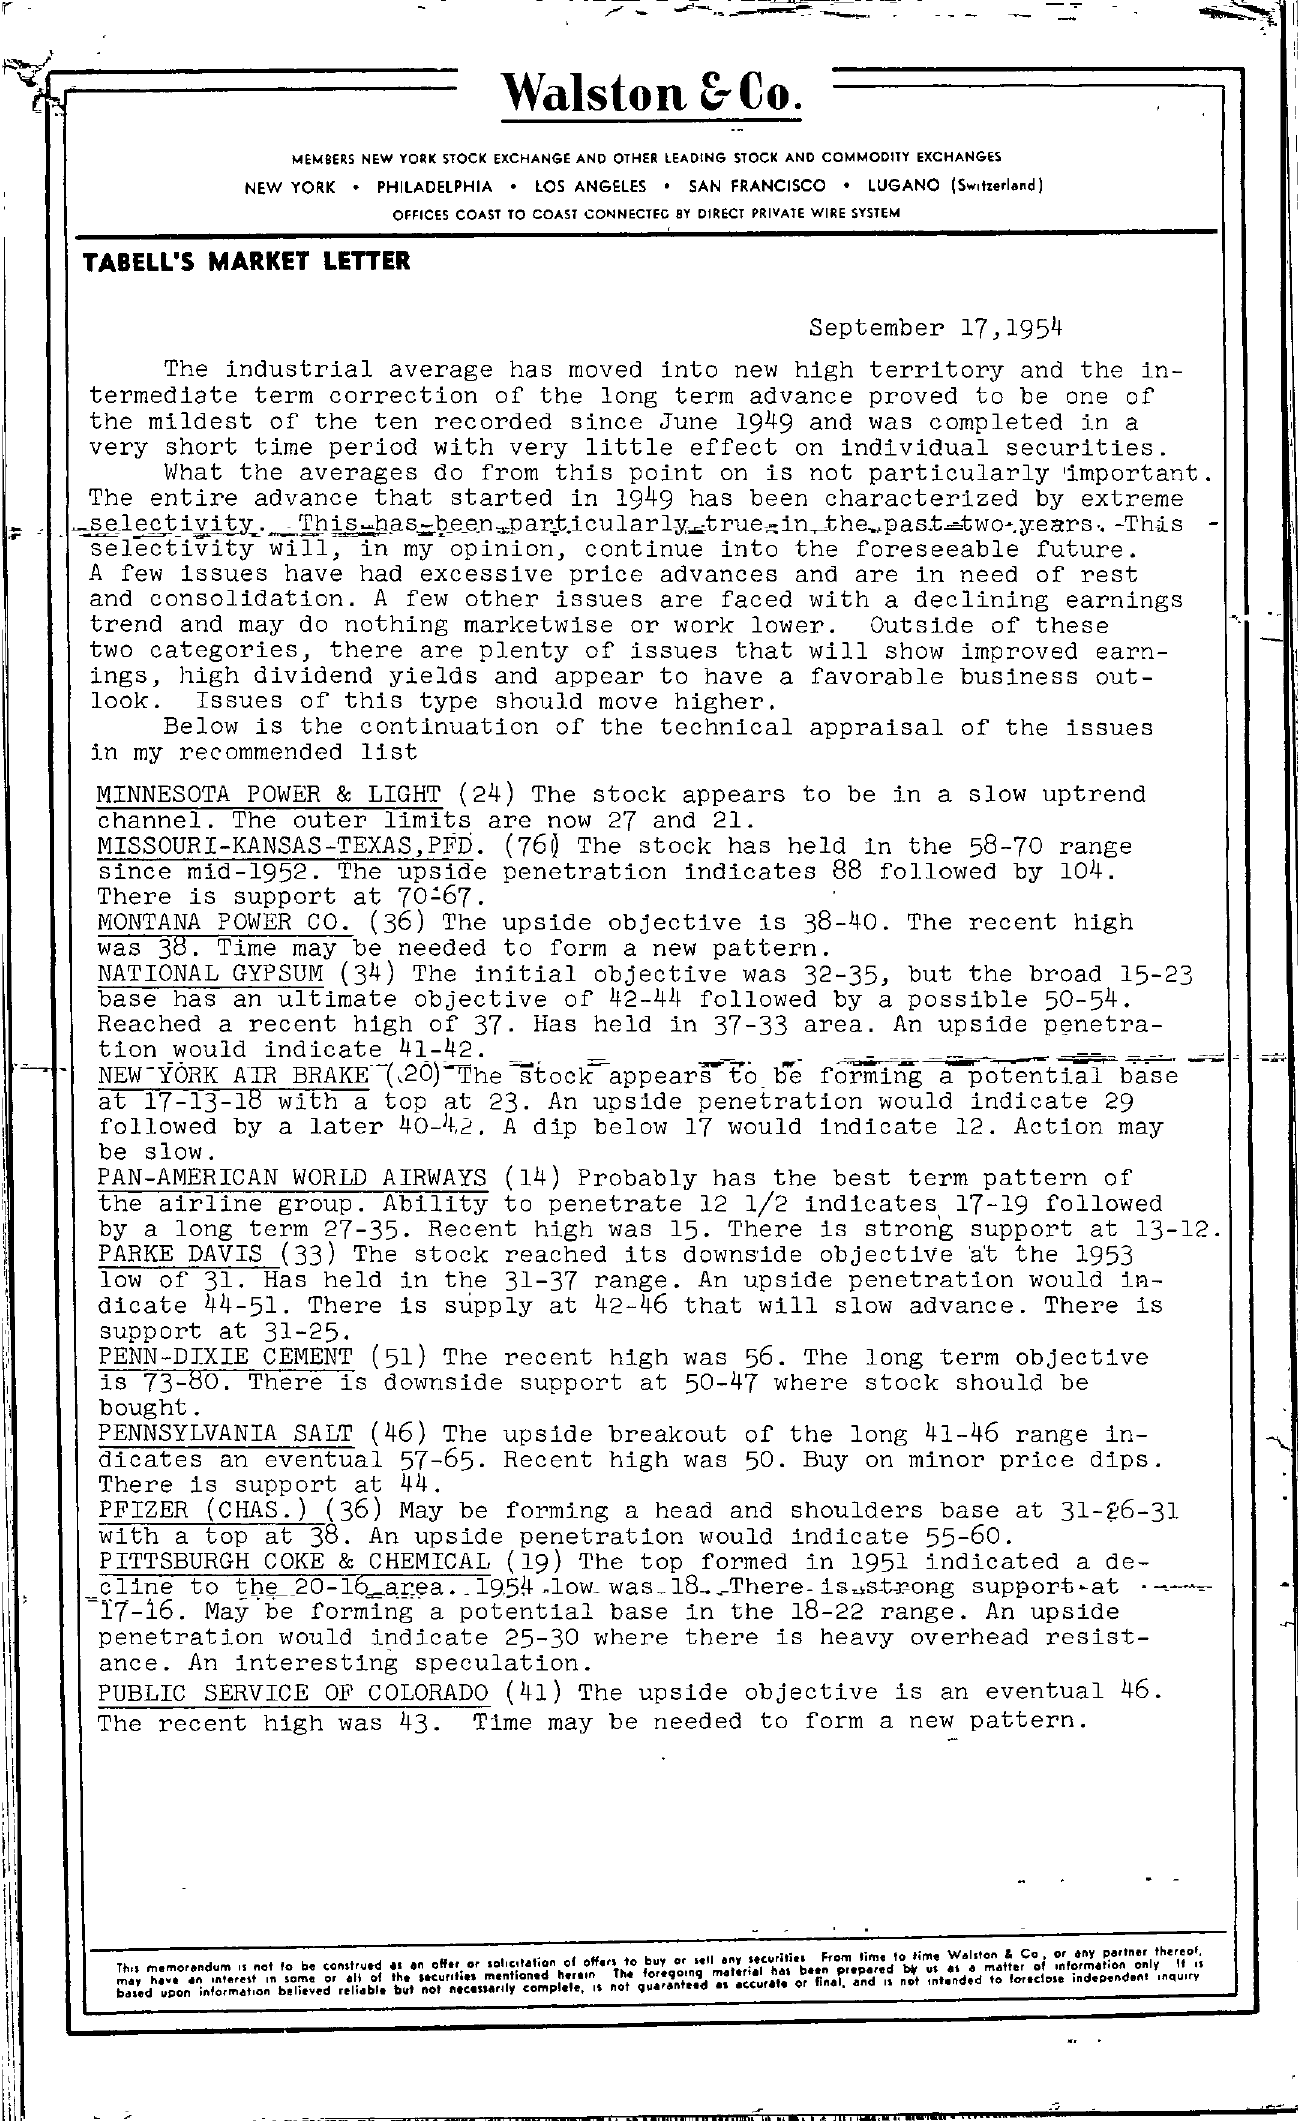 Tabell's Market Letter - September 17, 1954 page 1